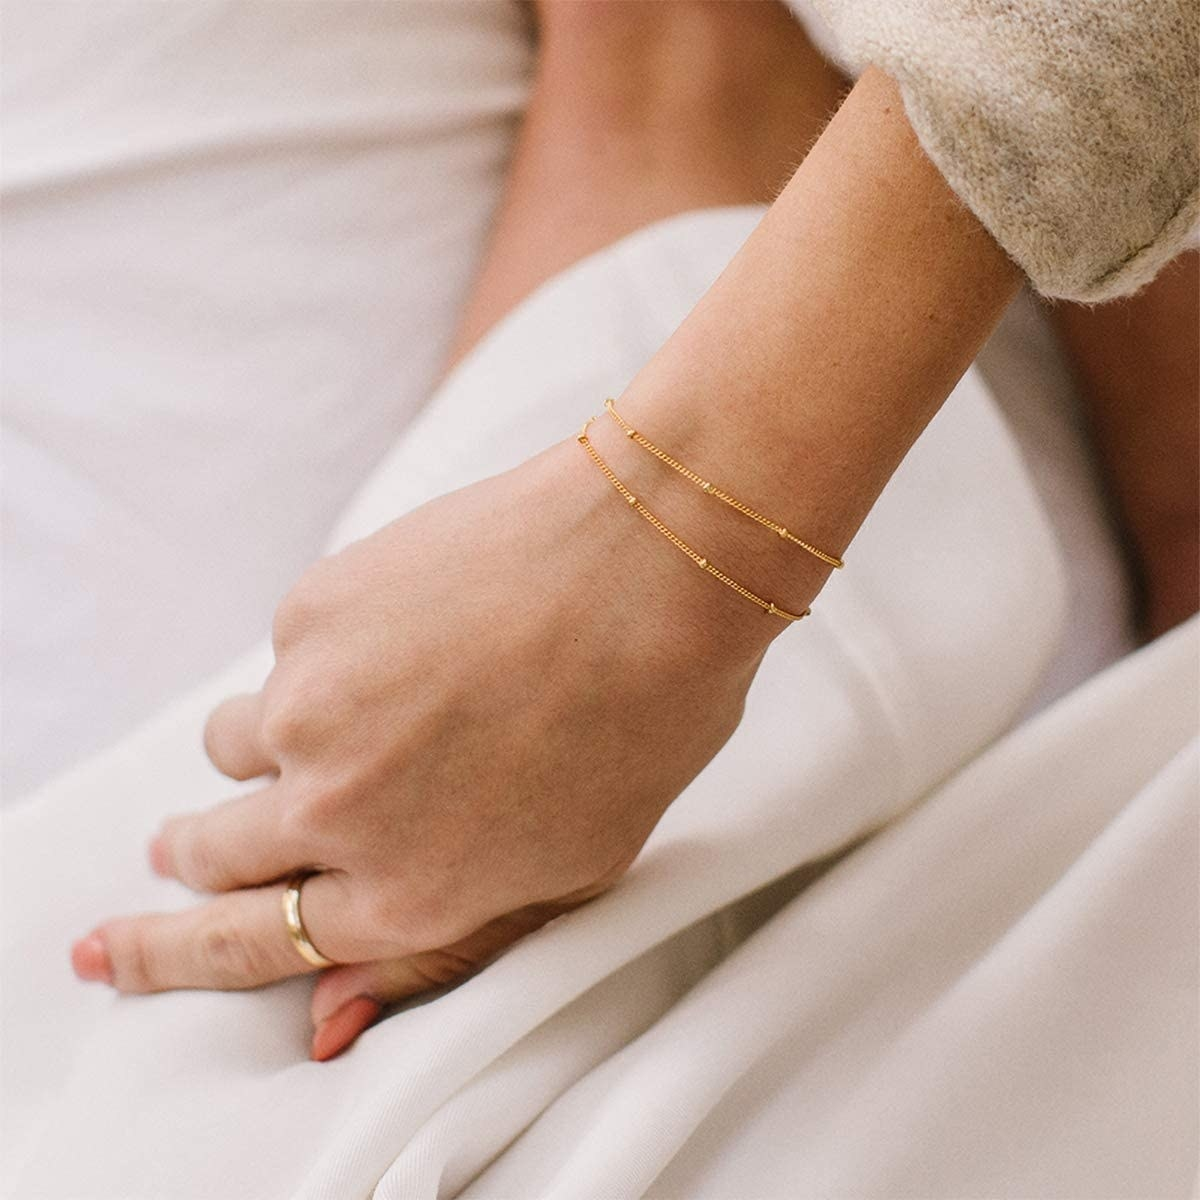 Model wearing layered gold bracelet